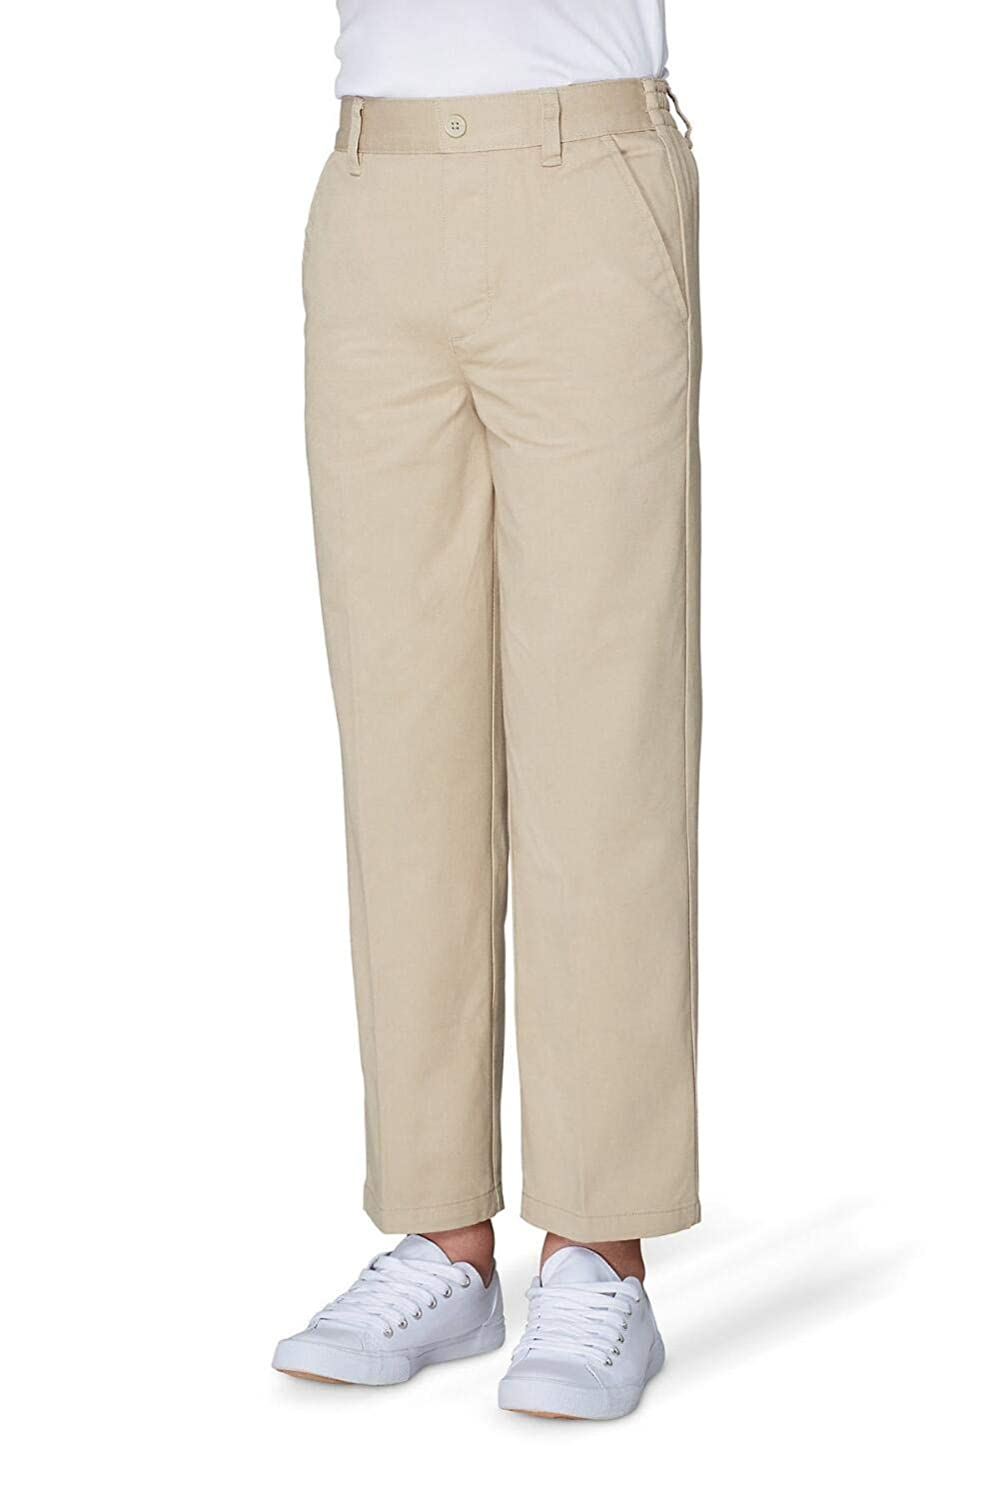 French Toast Boys Pull-On Pant